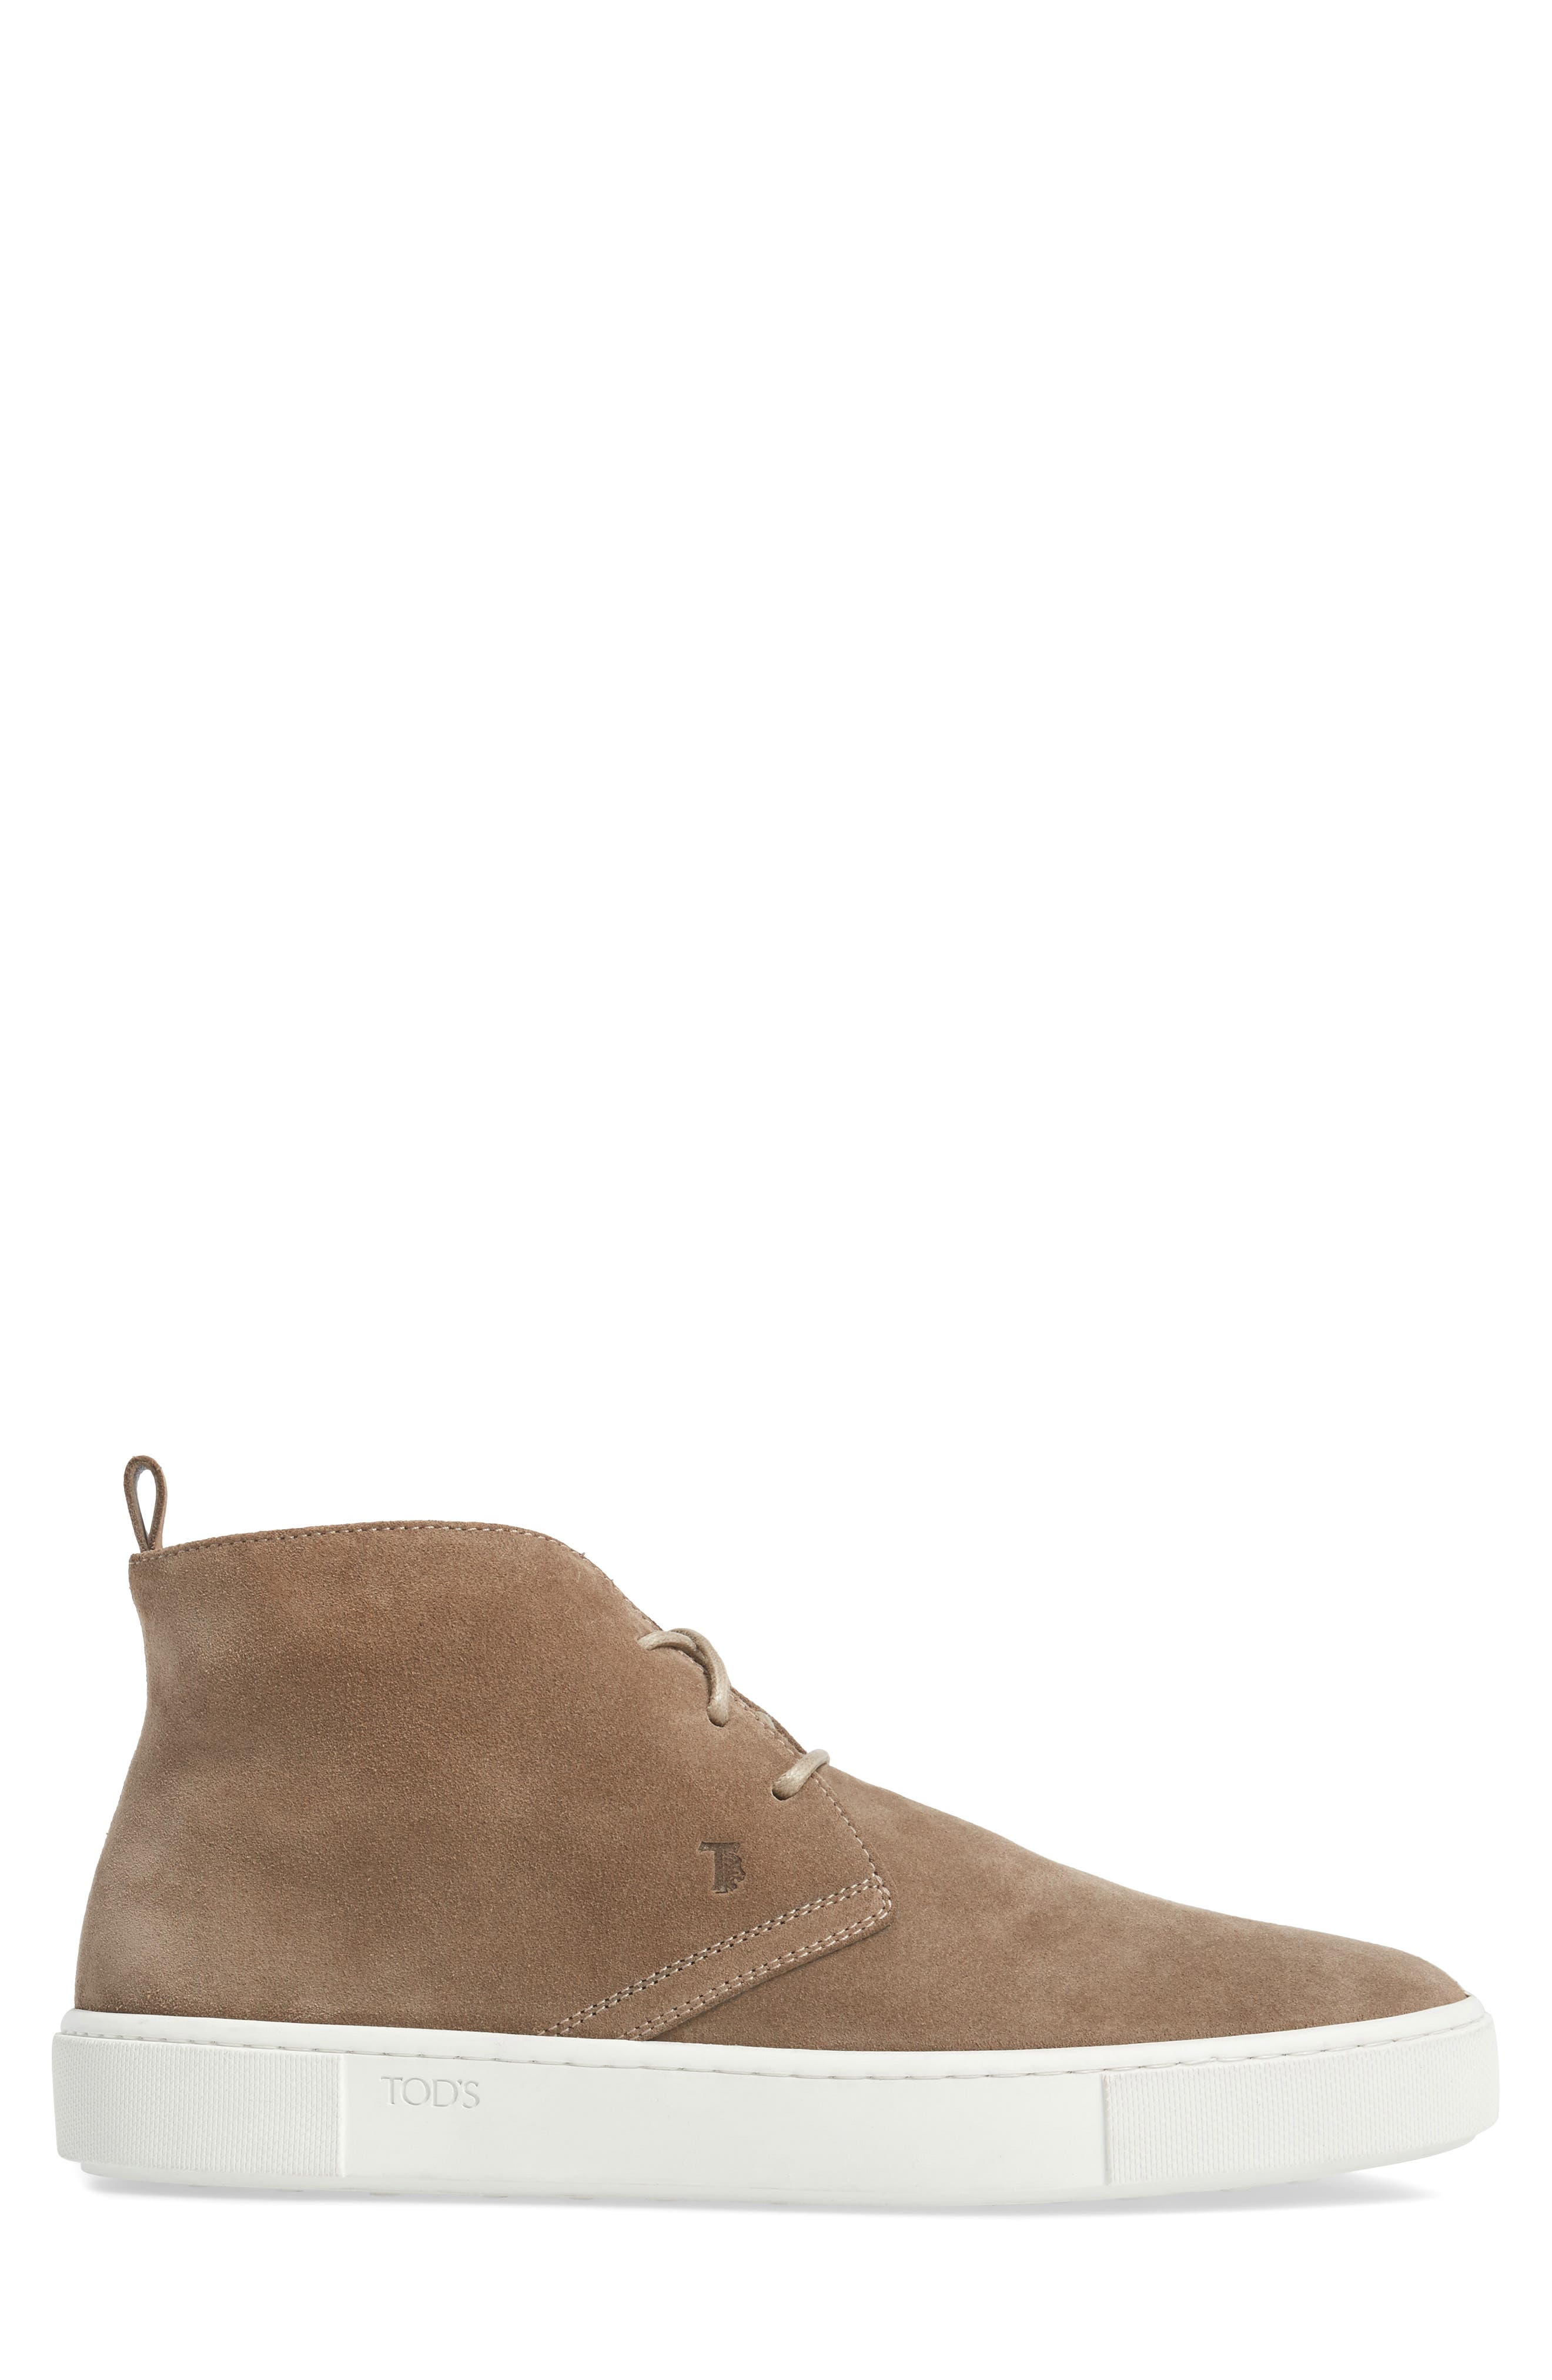 Leather Chukka Boot,                             Alternate thumbnail 3, color,                             Brown Suede